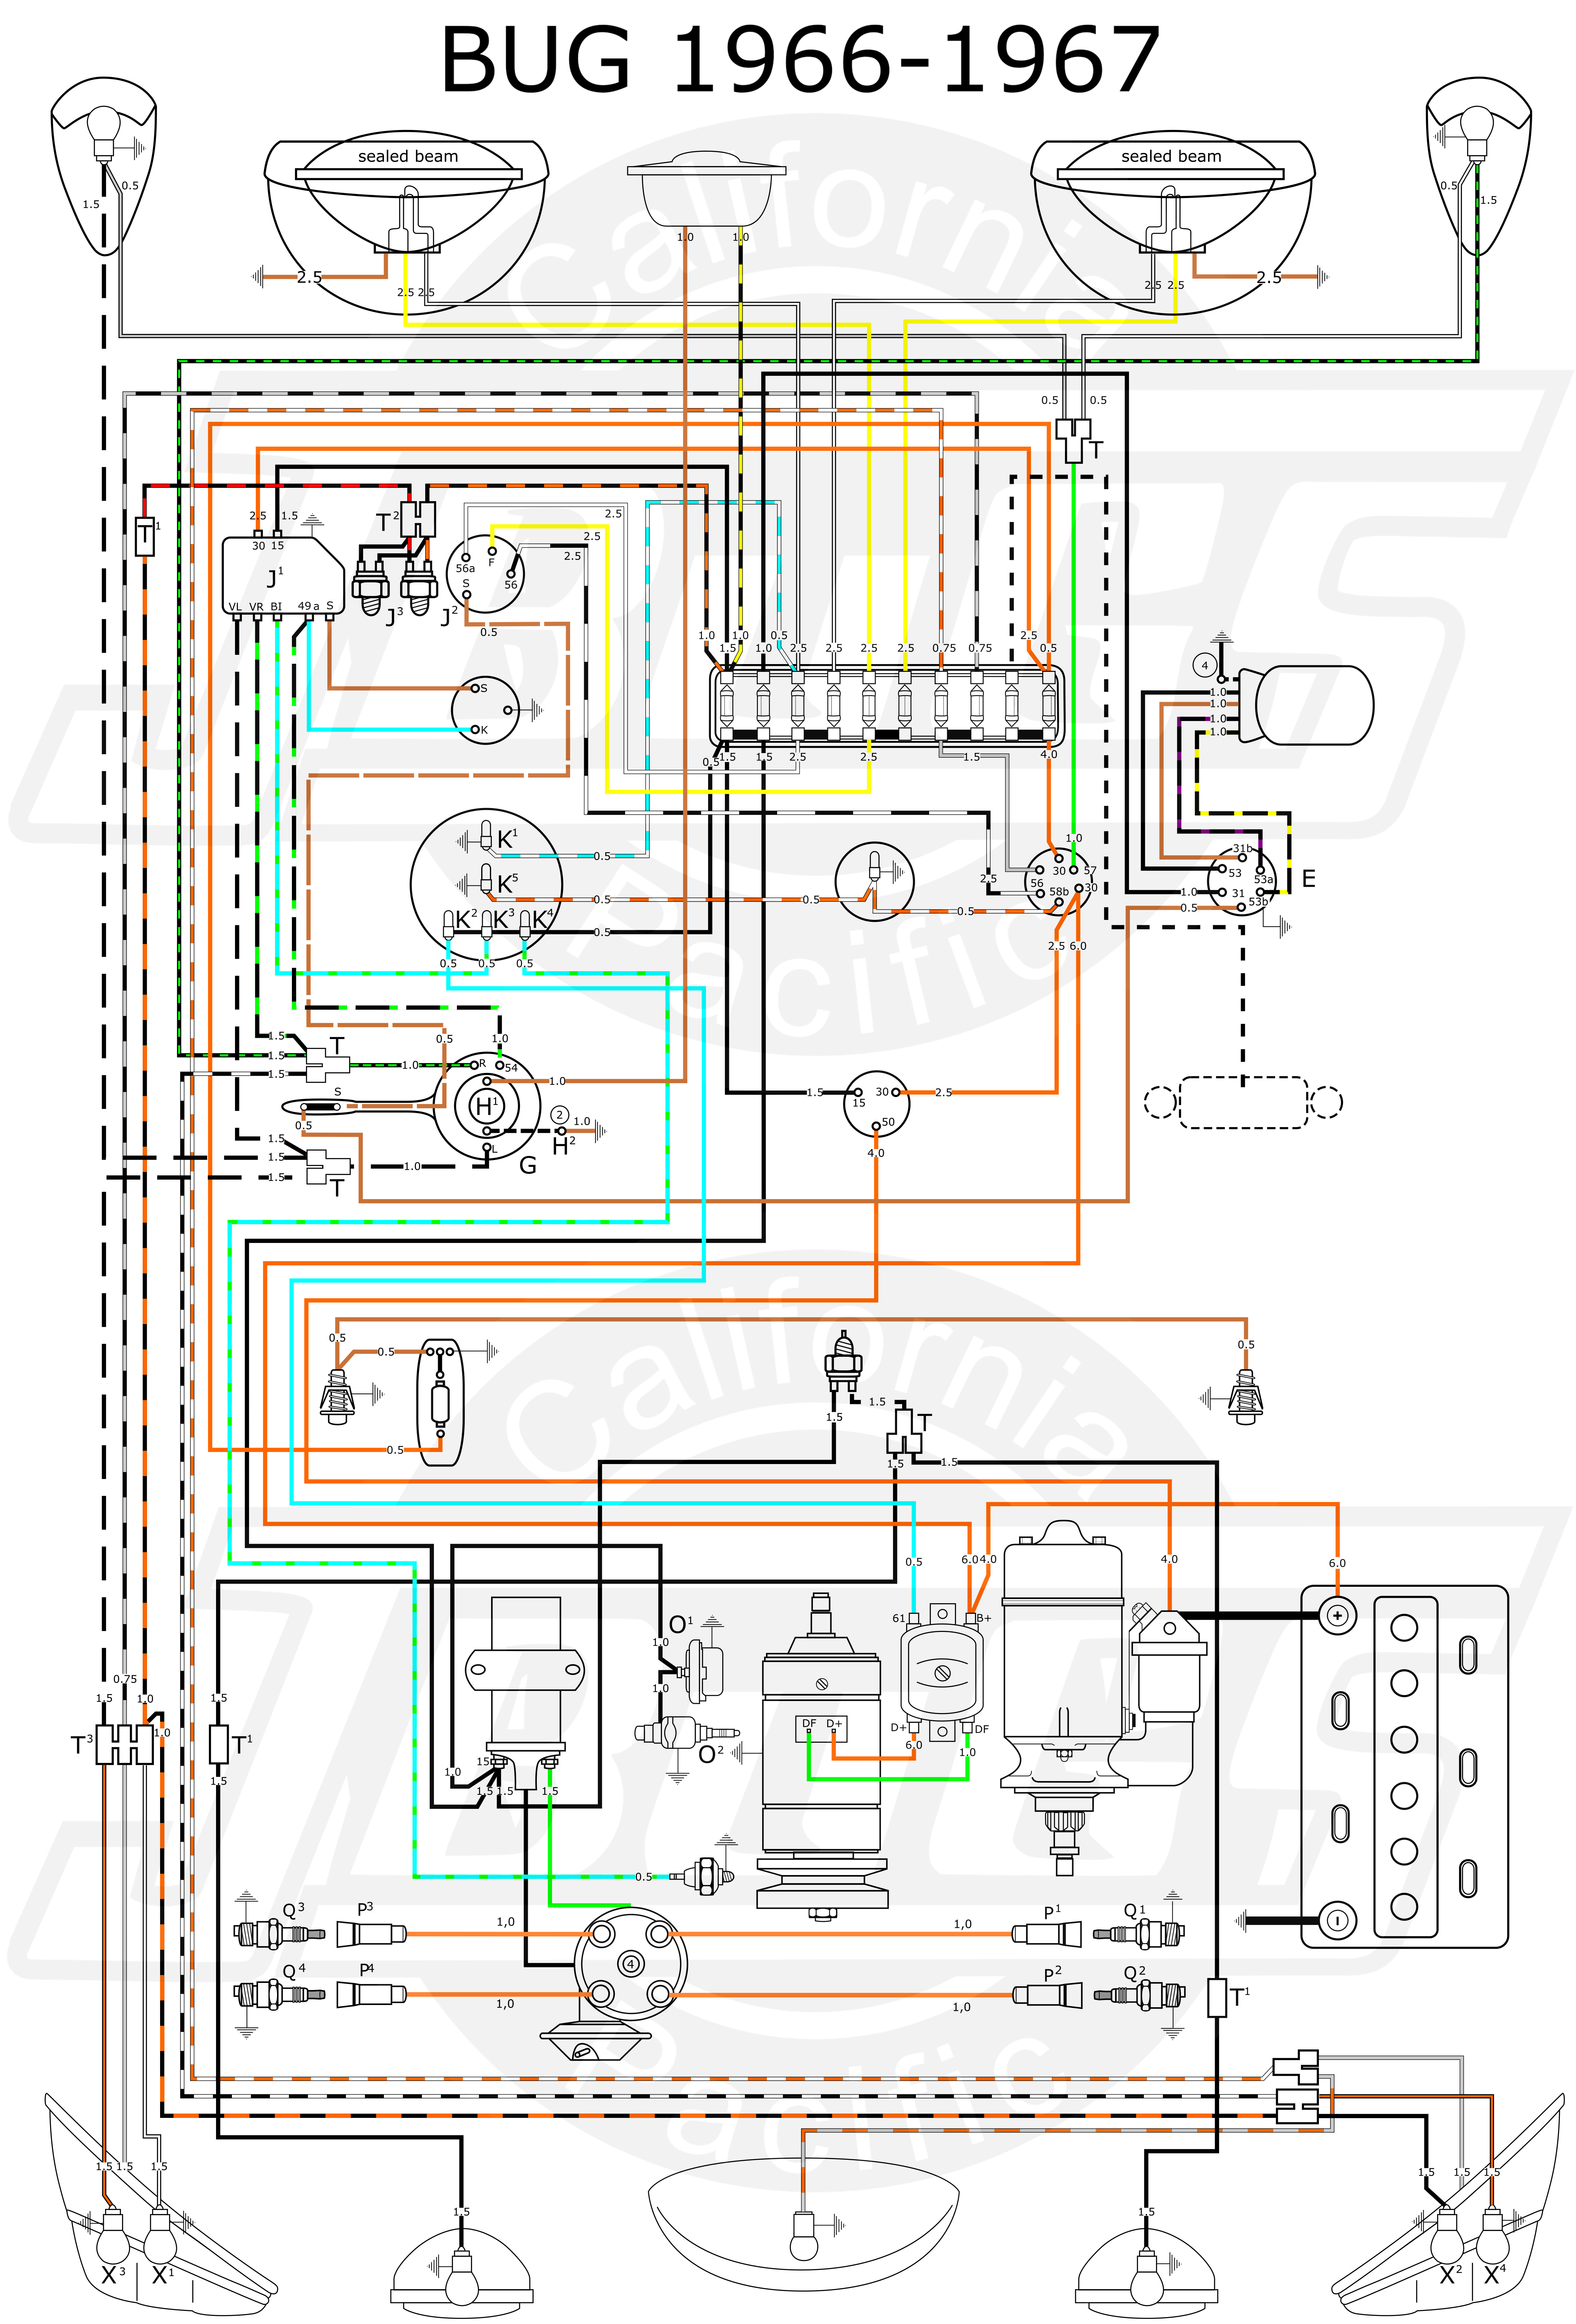 VW Bug 1966 67 Wiring Diagram 67 vw bug wiring diagram wiring diagram & electricity basics 101 \u2022